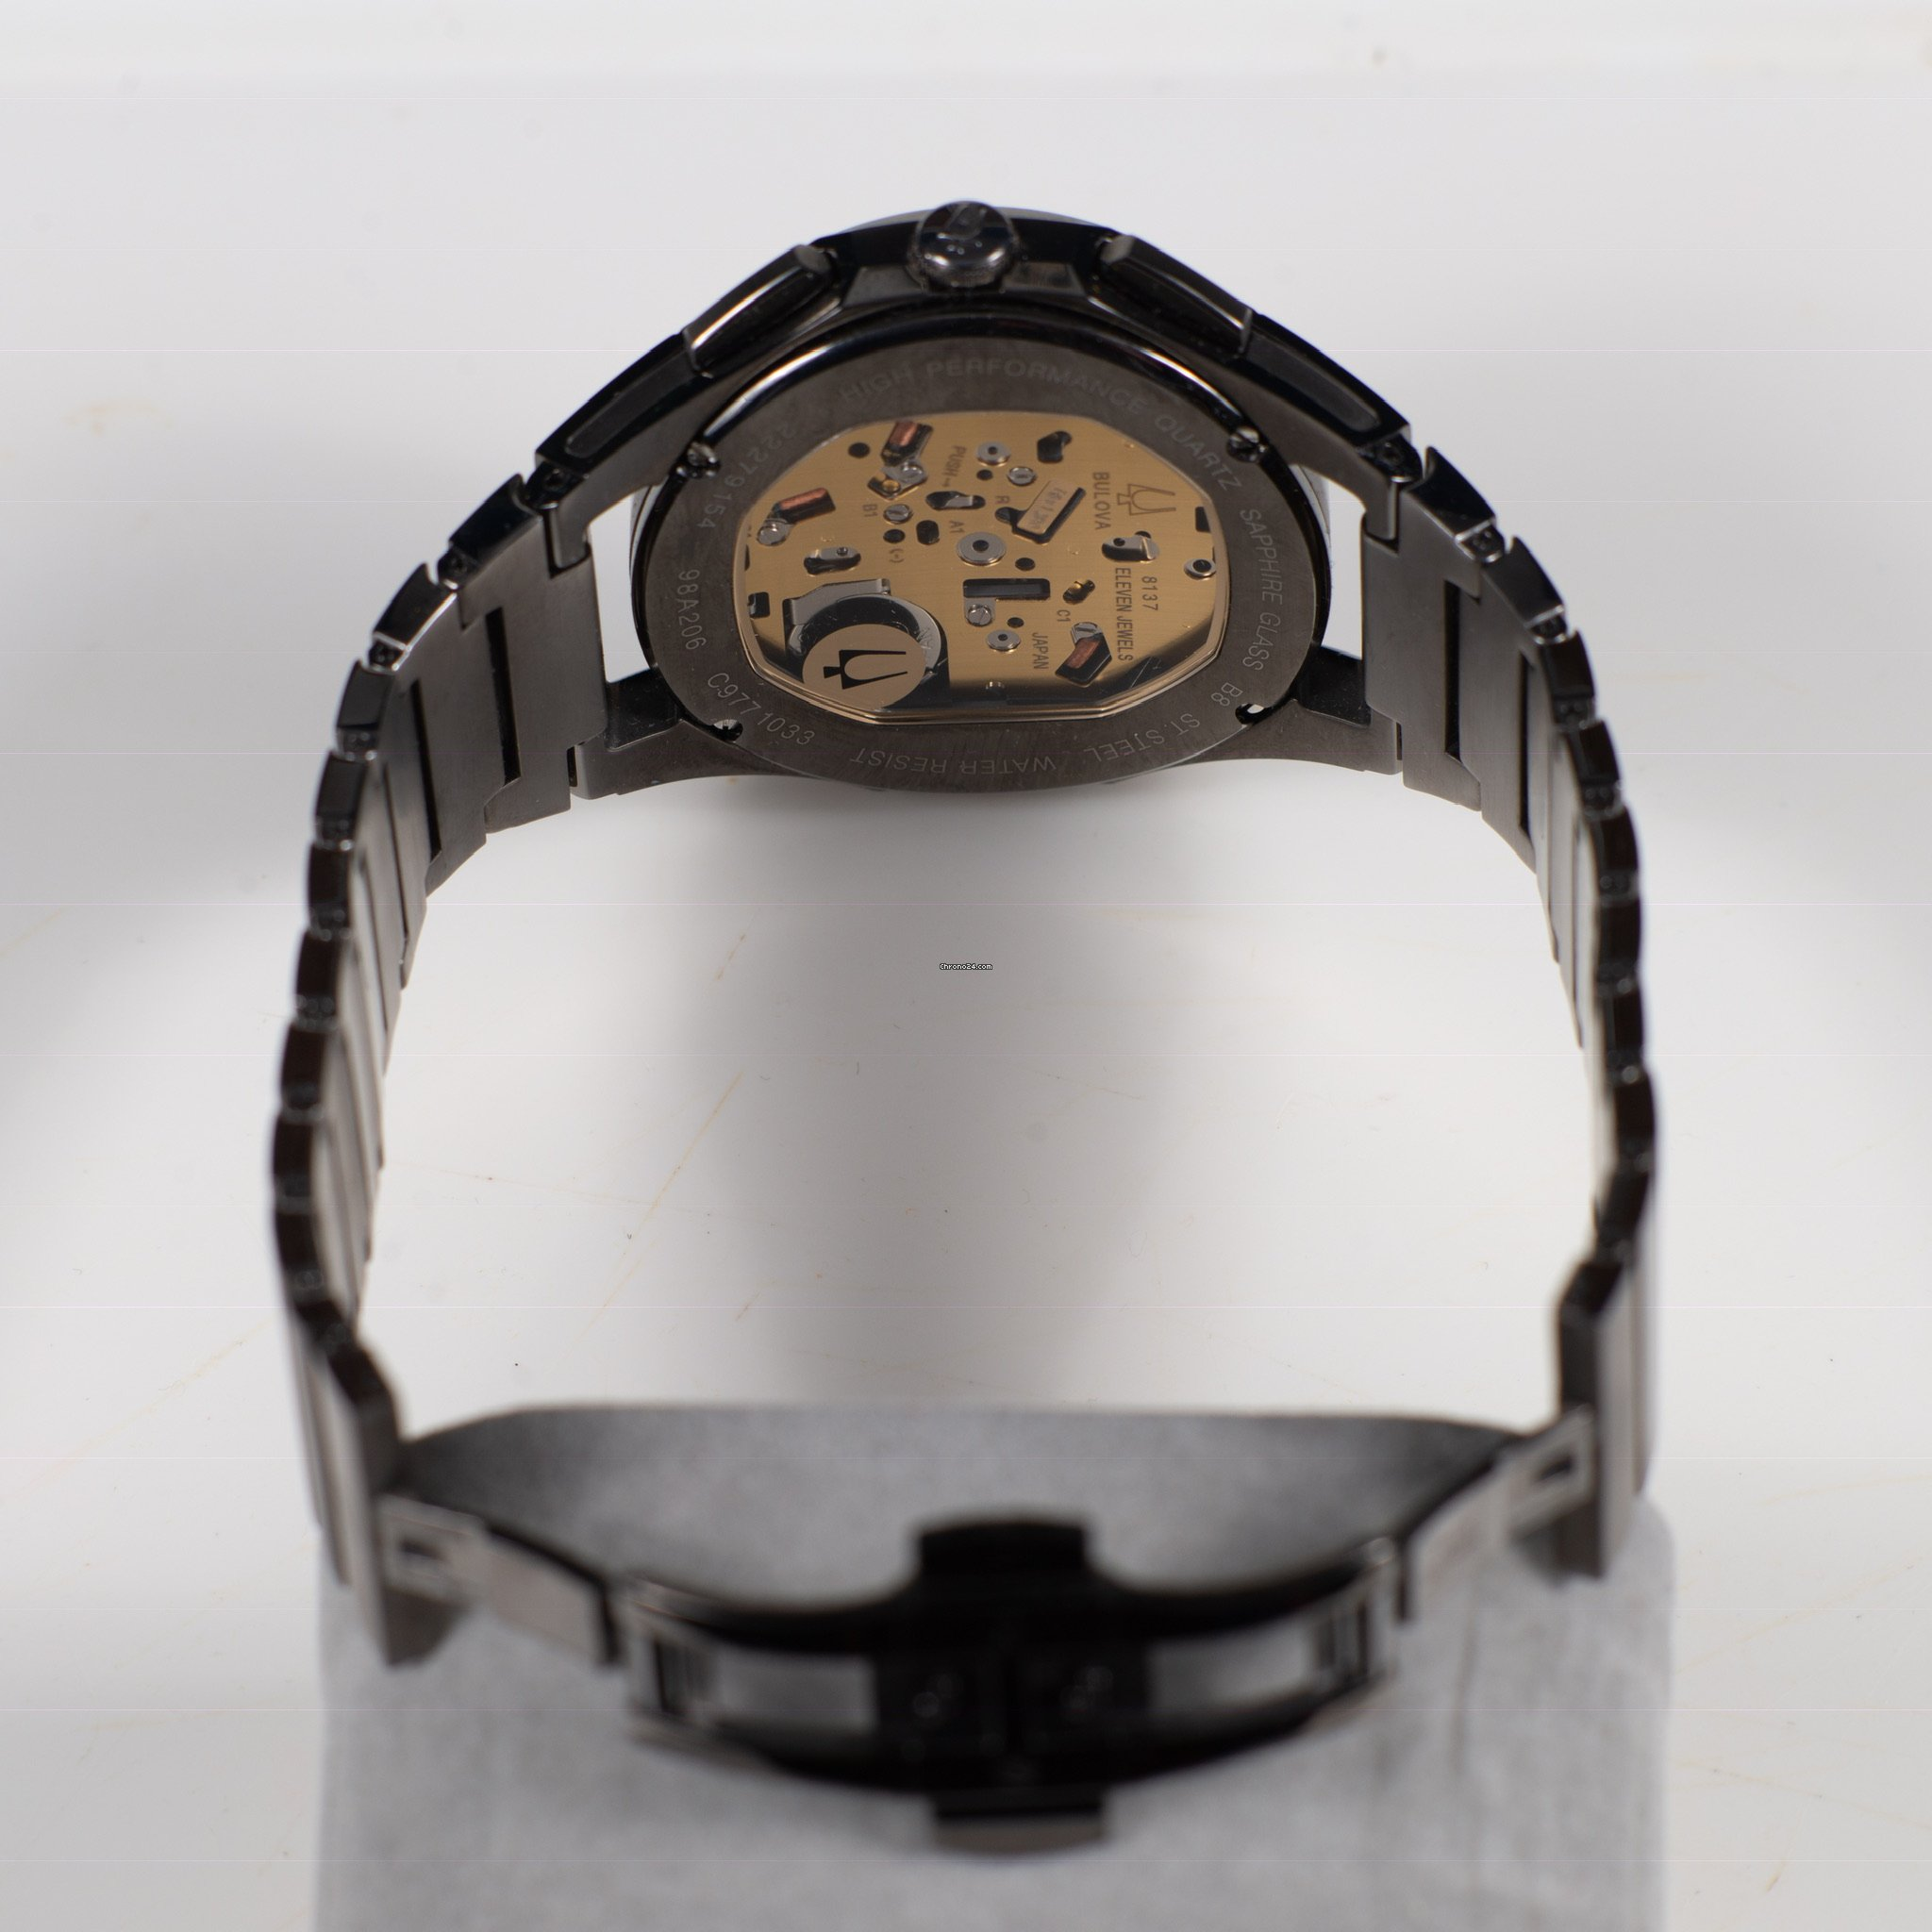 e9b6e8df6 Bulova 98A206 for Listing no longer available for sale from a Private  Seller on Chrono24